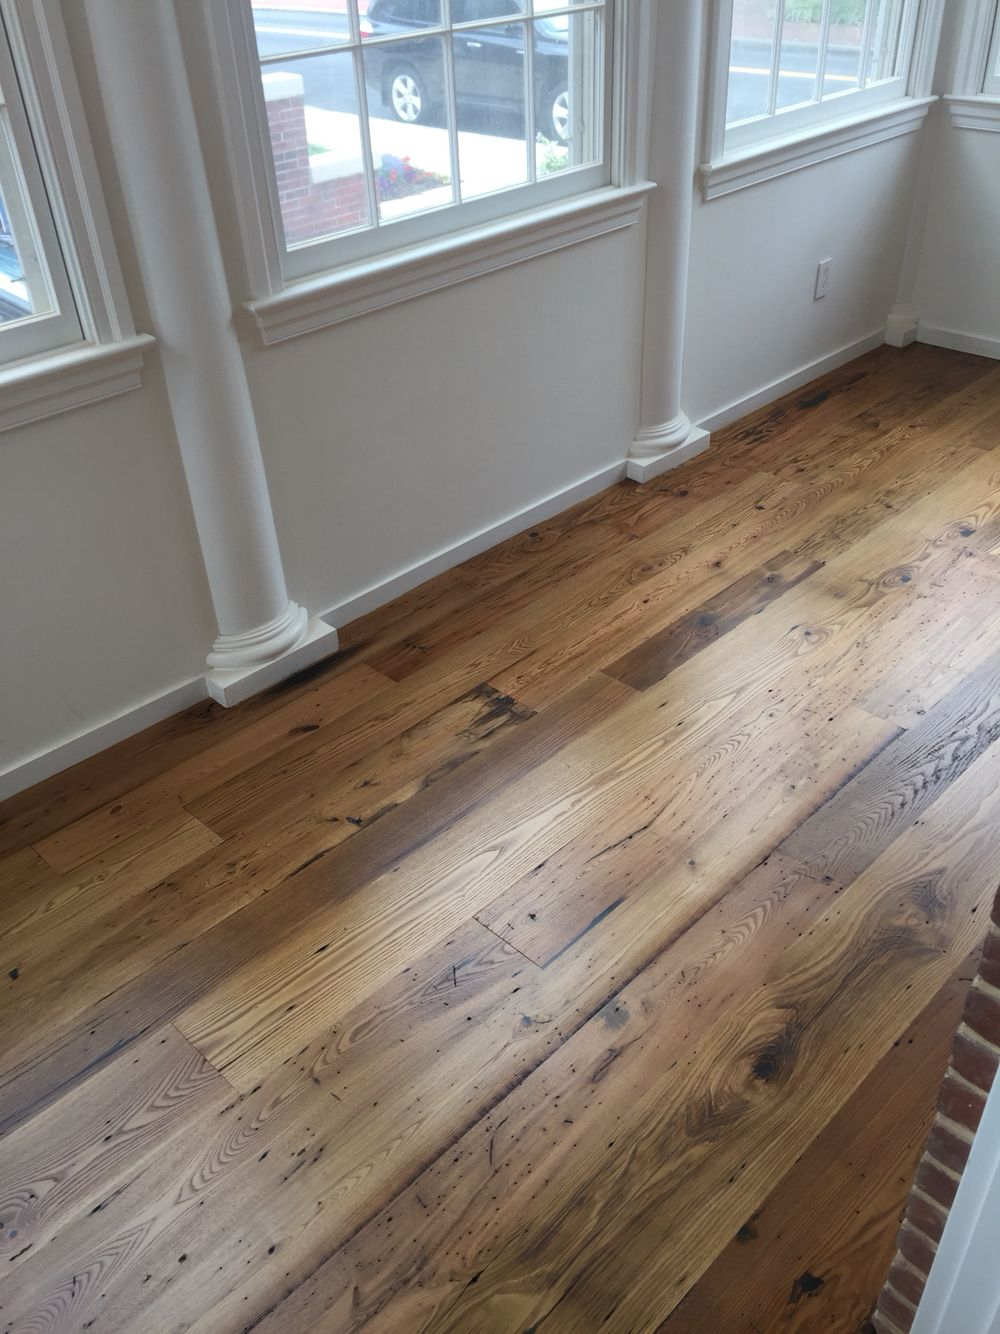 Red Oak Hardwood Floors Stained With Bona Antique Brown Stain Finished With Bona Mega One Water Red Oak Hardwood Floors Stains Red Oak Floors Wood Floor Colors